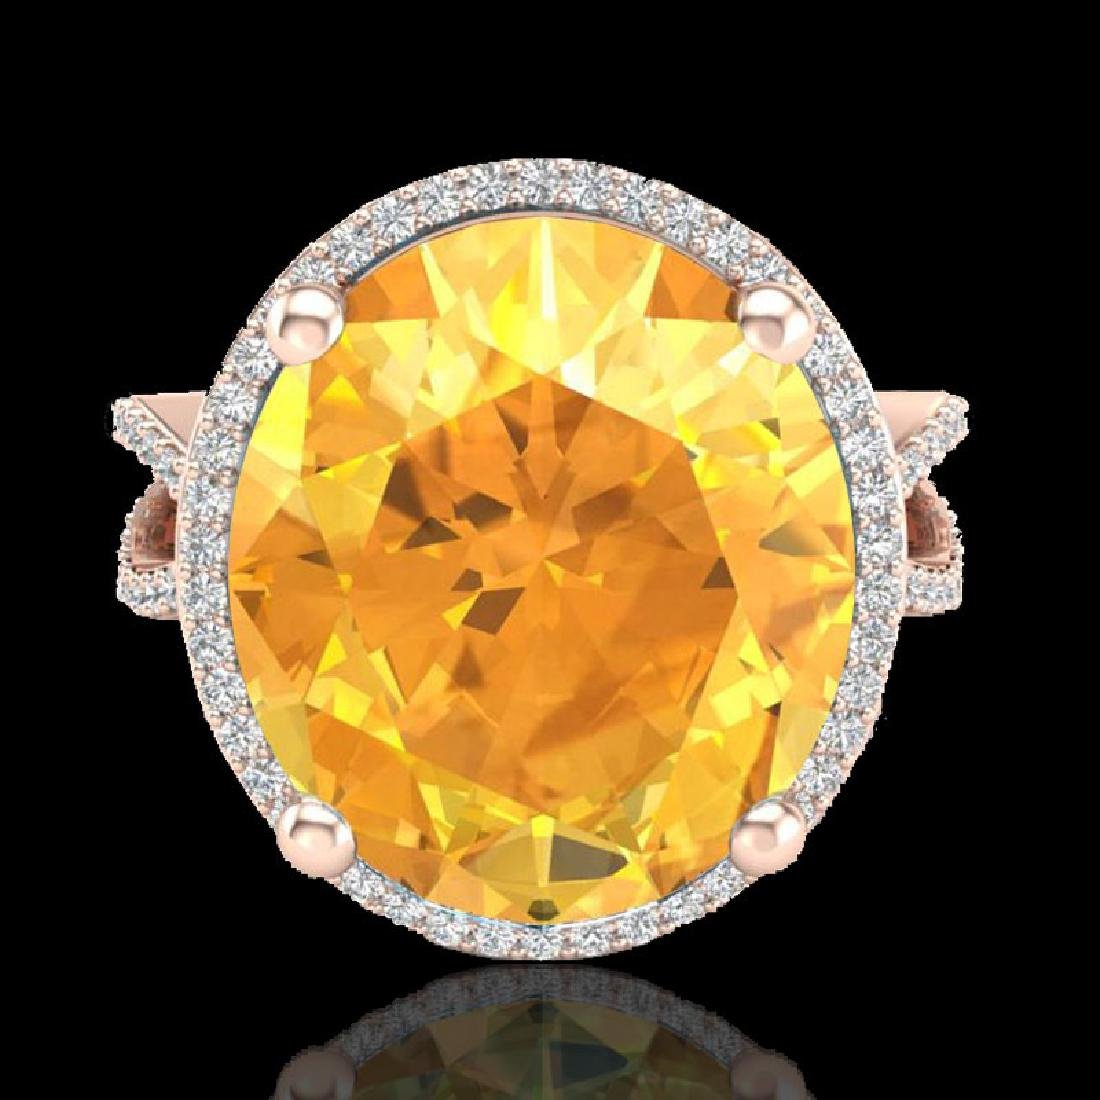 10 CTW Citrine & Micro Pave VS/SI Diamond Halo Ring 14K